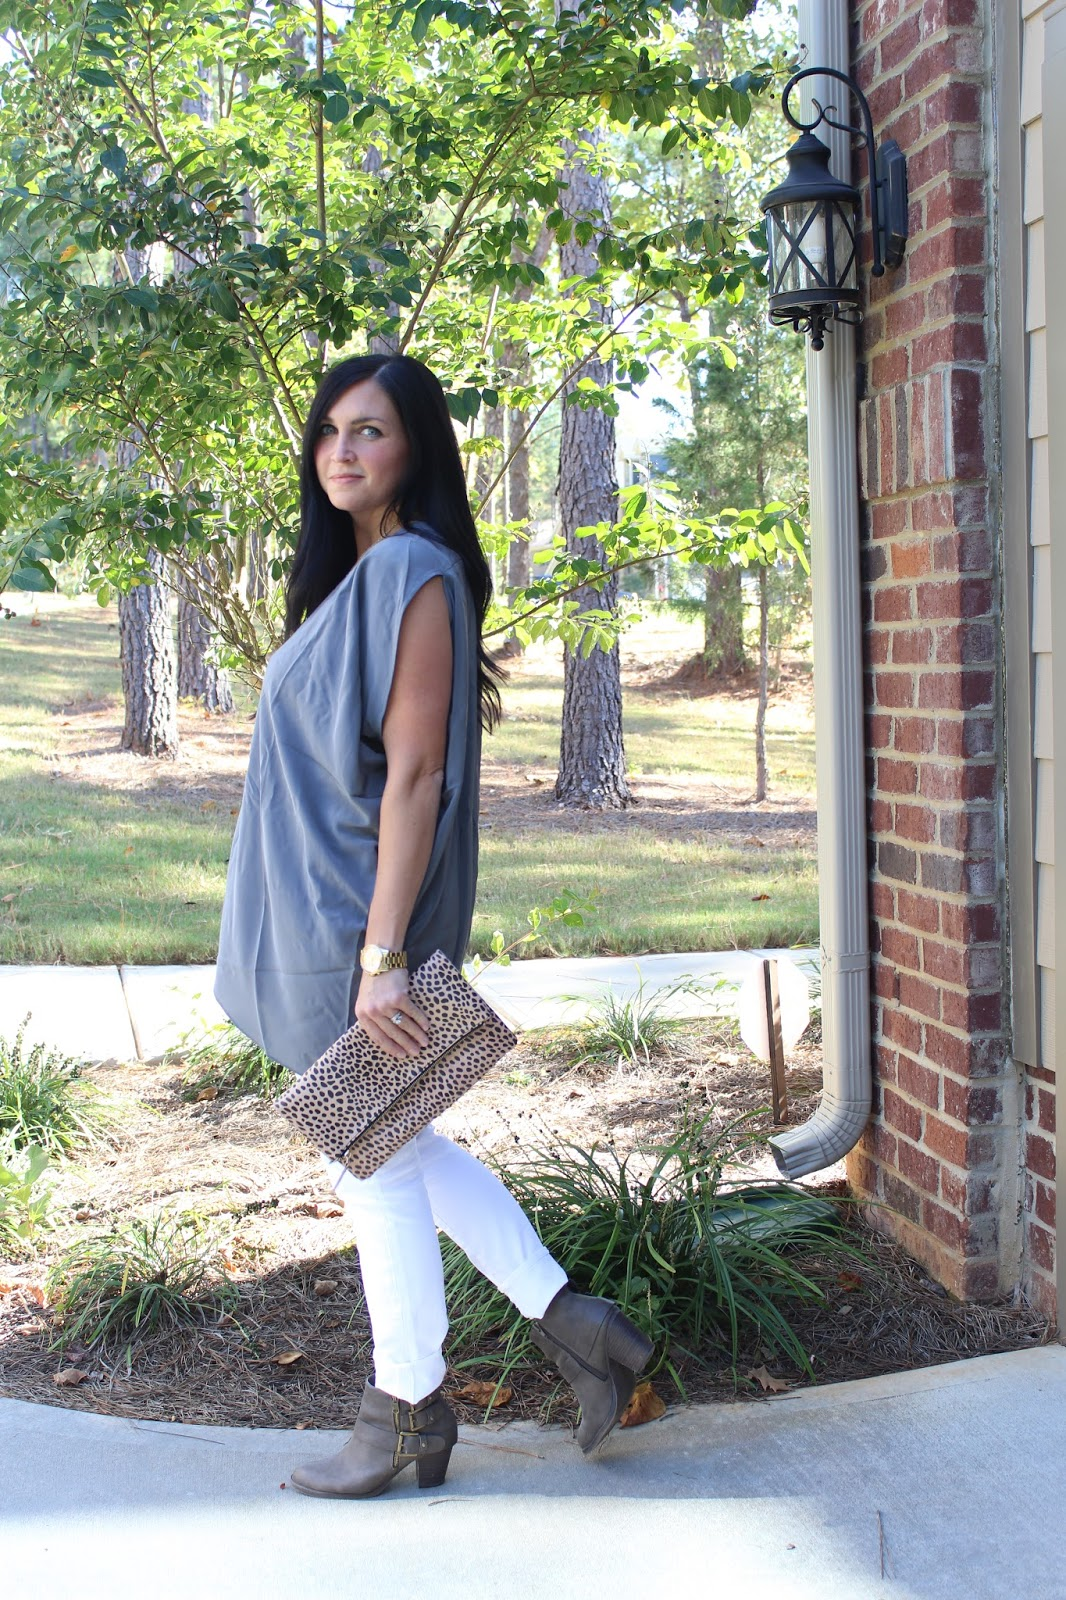 White jeans, grey tunic, nursing friendly outfit